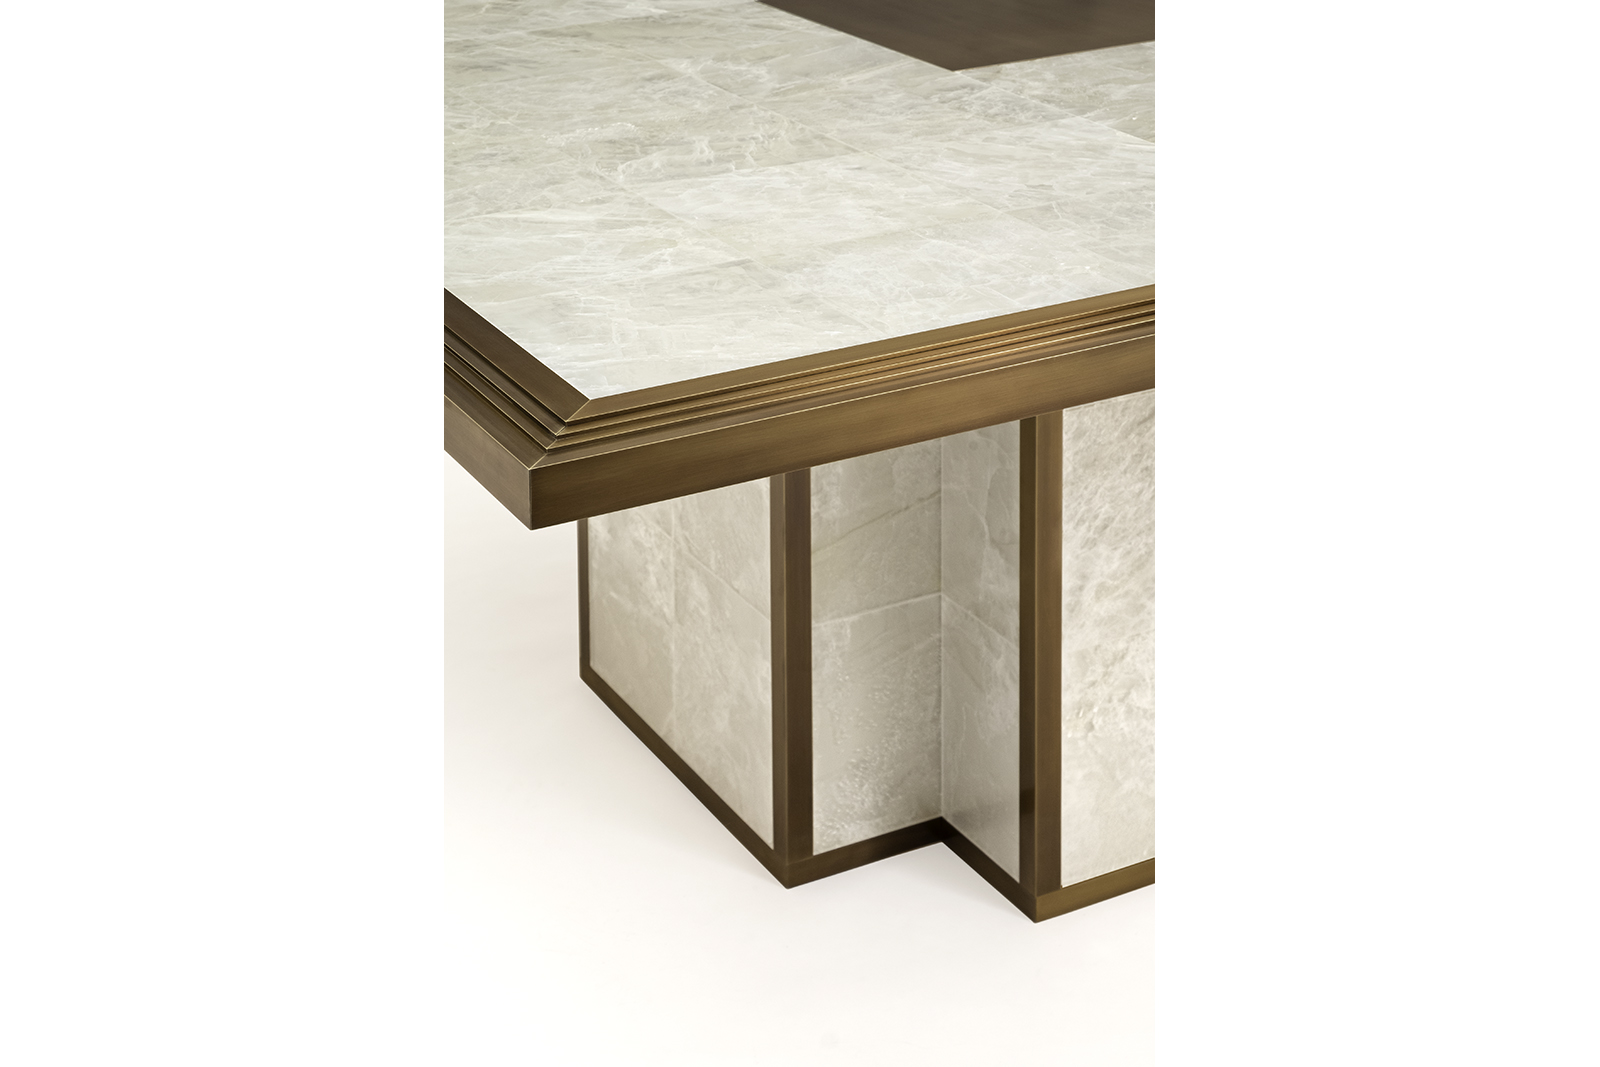 entry table in gypsum & bronze 2